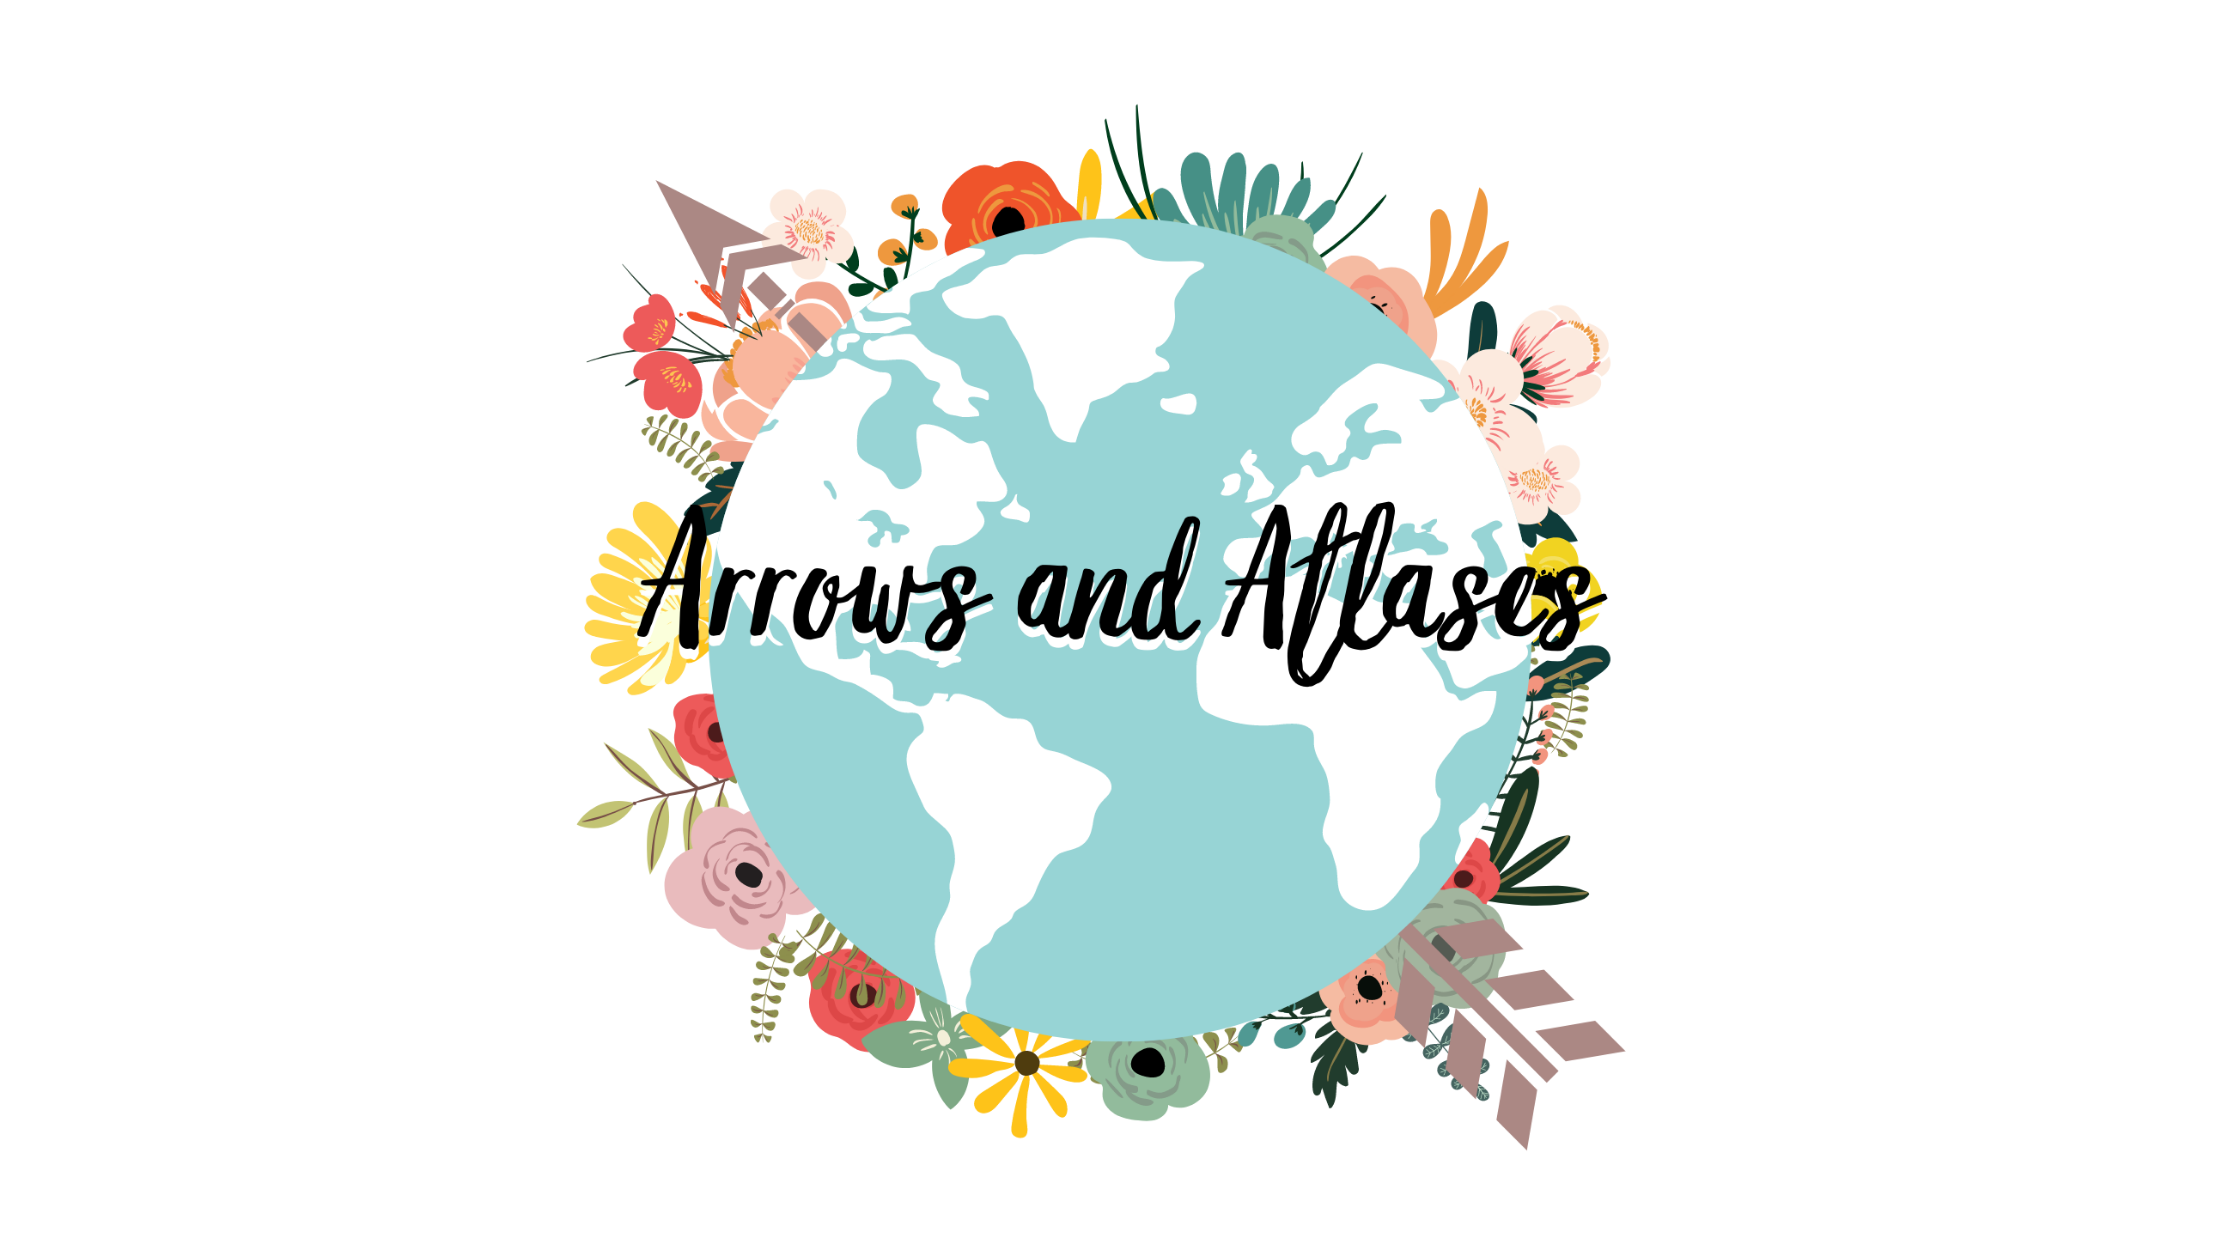 Arrows and Atlases